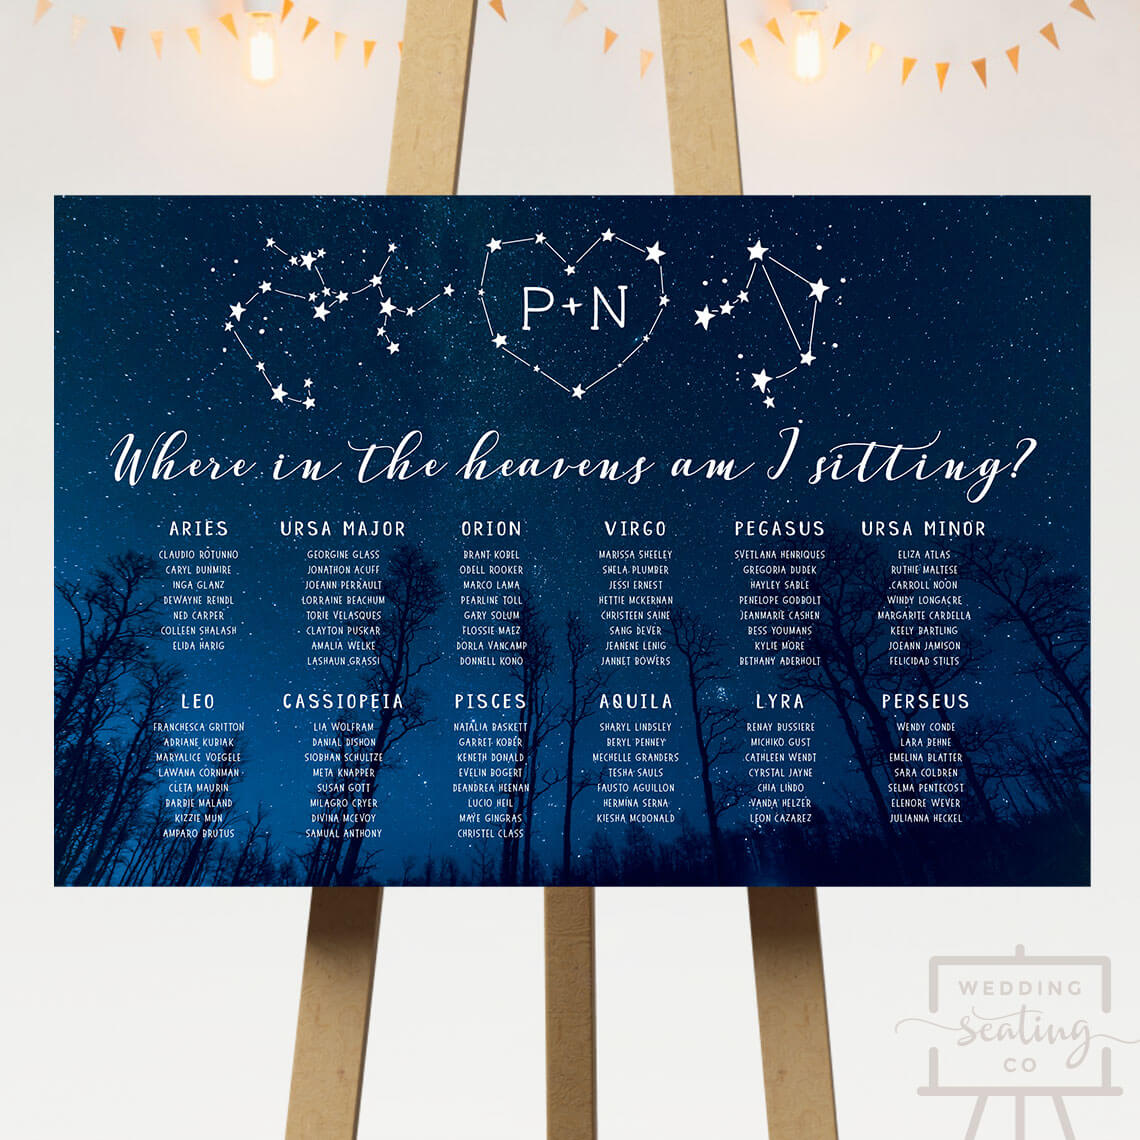 Starry night wedding seating chart wedding seating co starry night wedding seating chart junglespirit Gallery